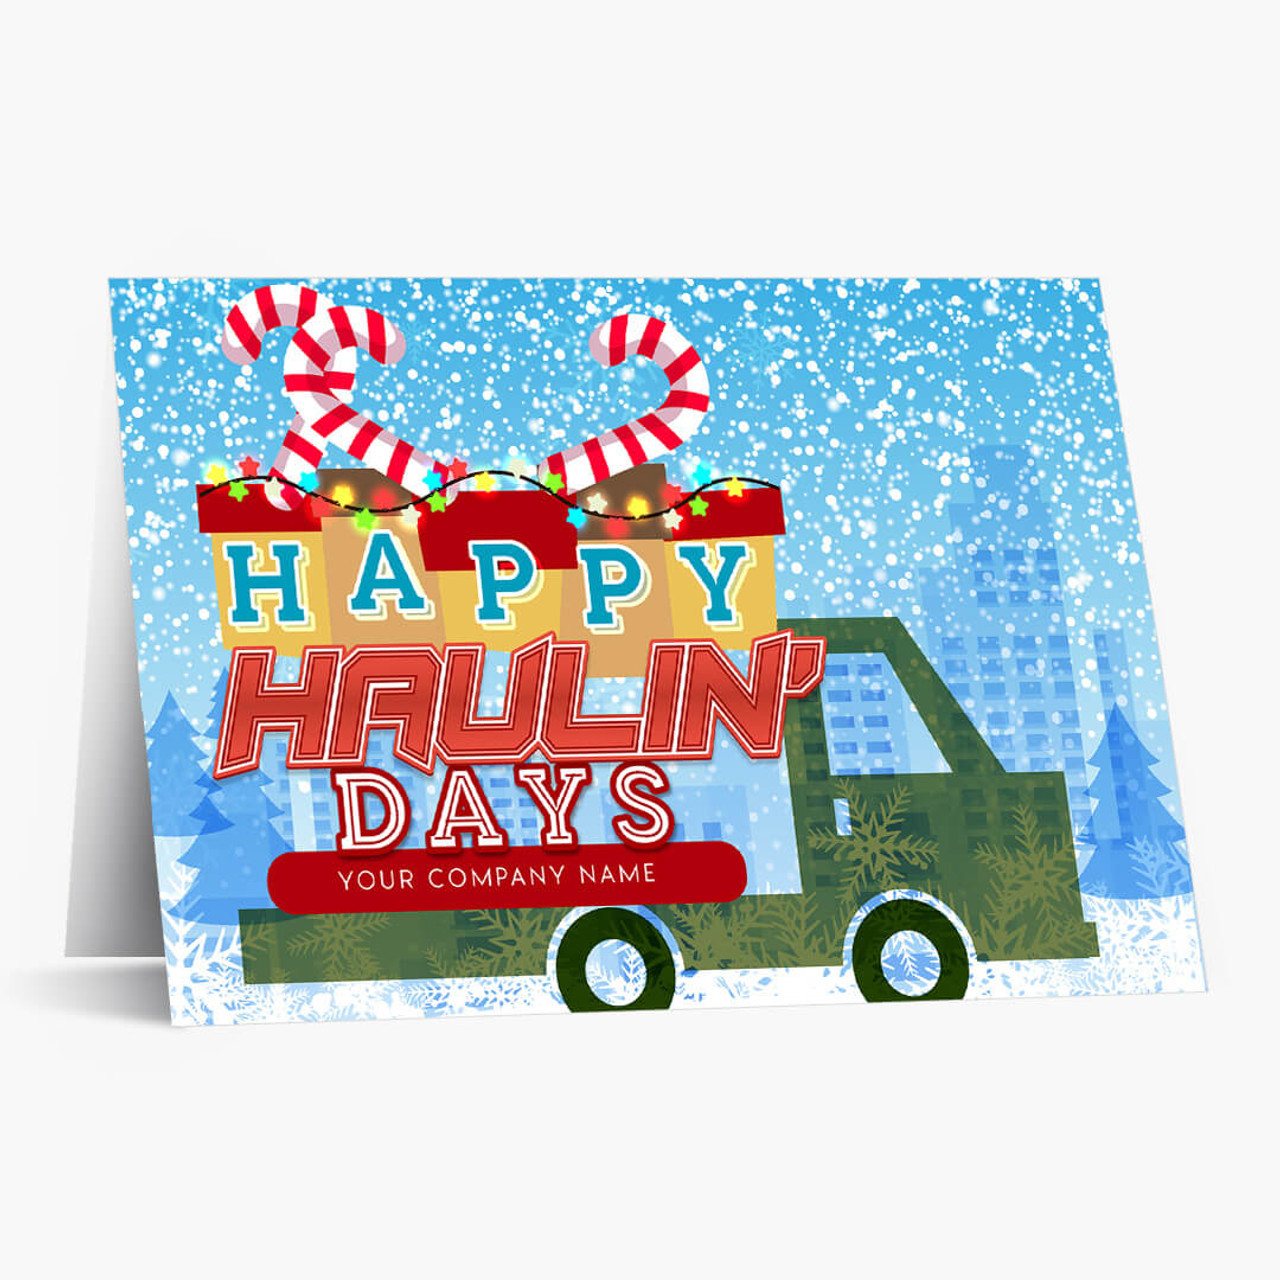 Haulin Days Christmas Card